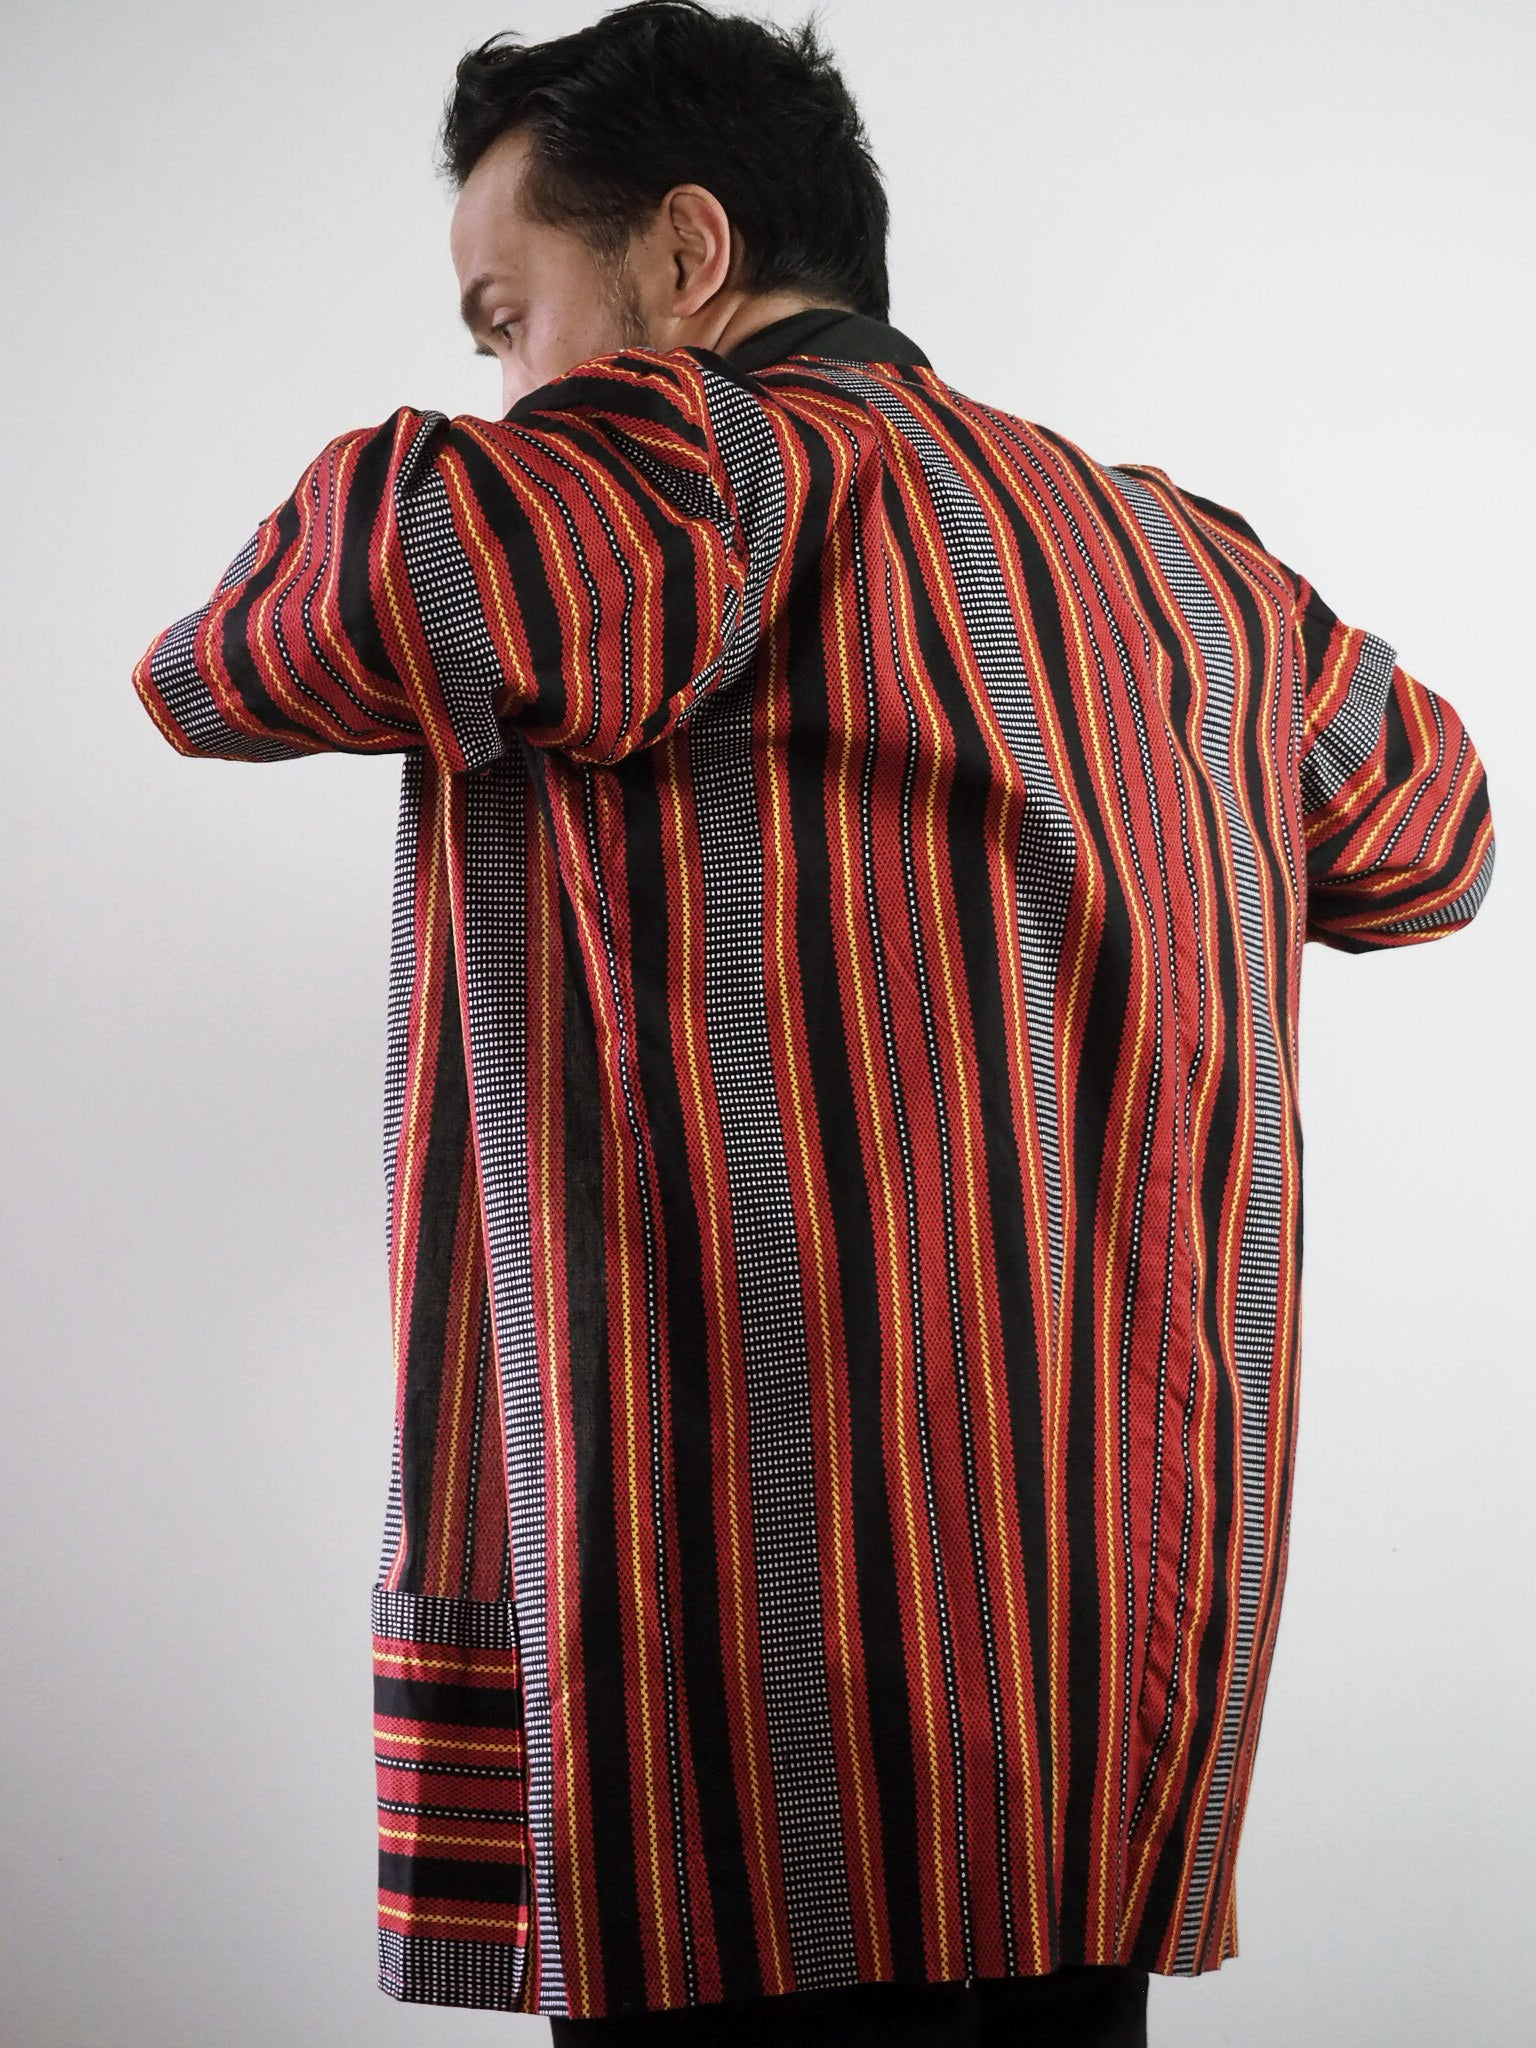 VINTA Unisex Printed Ifugao Jacket on Darrel Back View